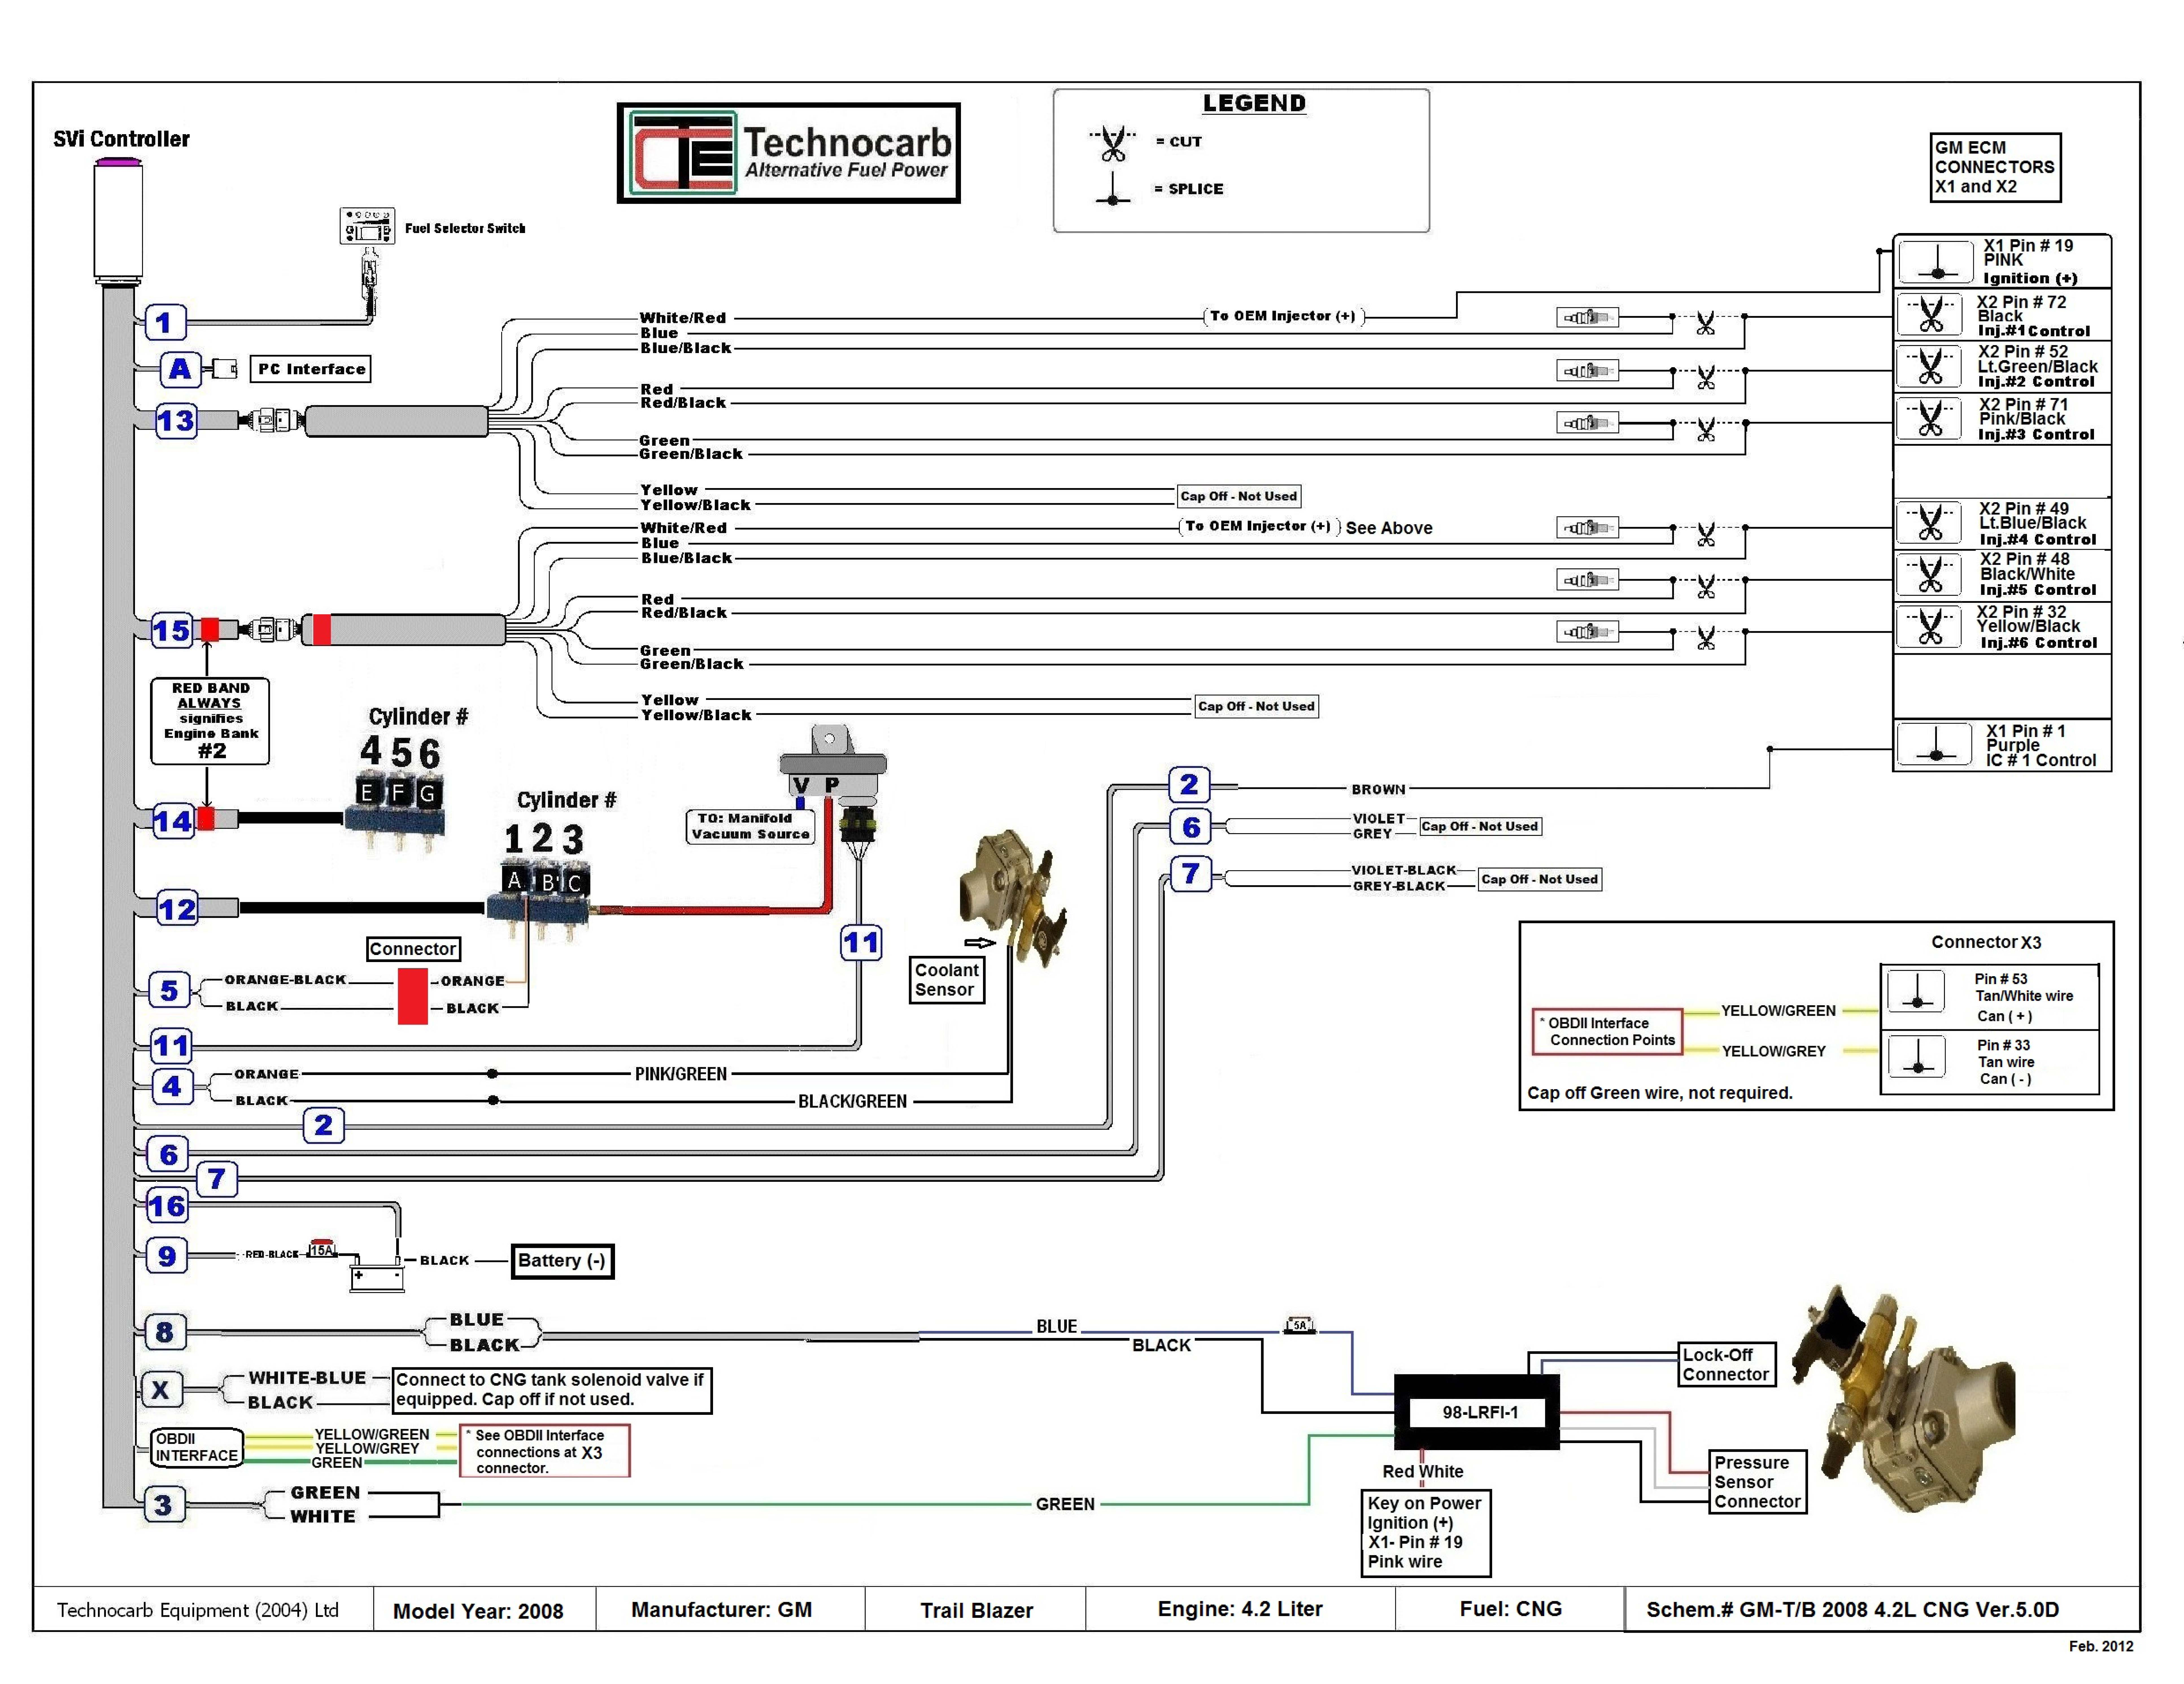 wiring diagram fuel injector wiring trailblazer wiring diagram at bayanpartner.co